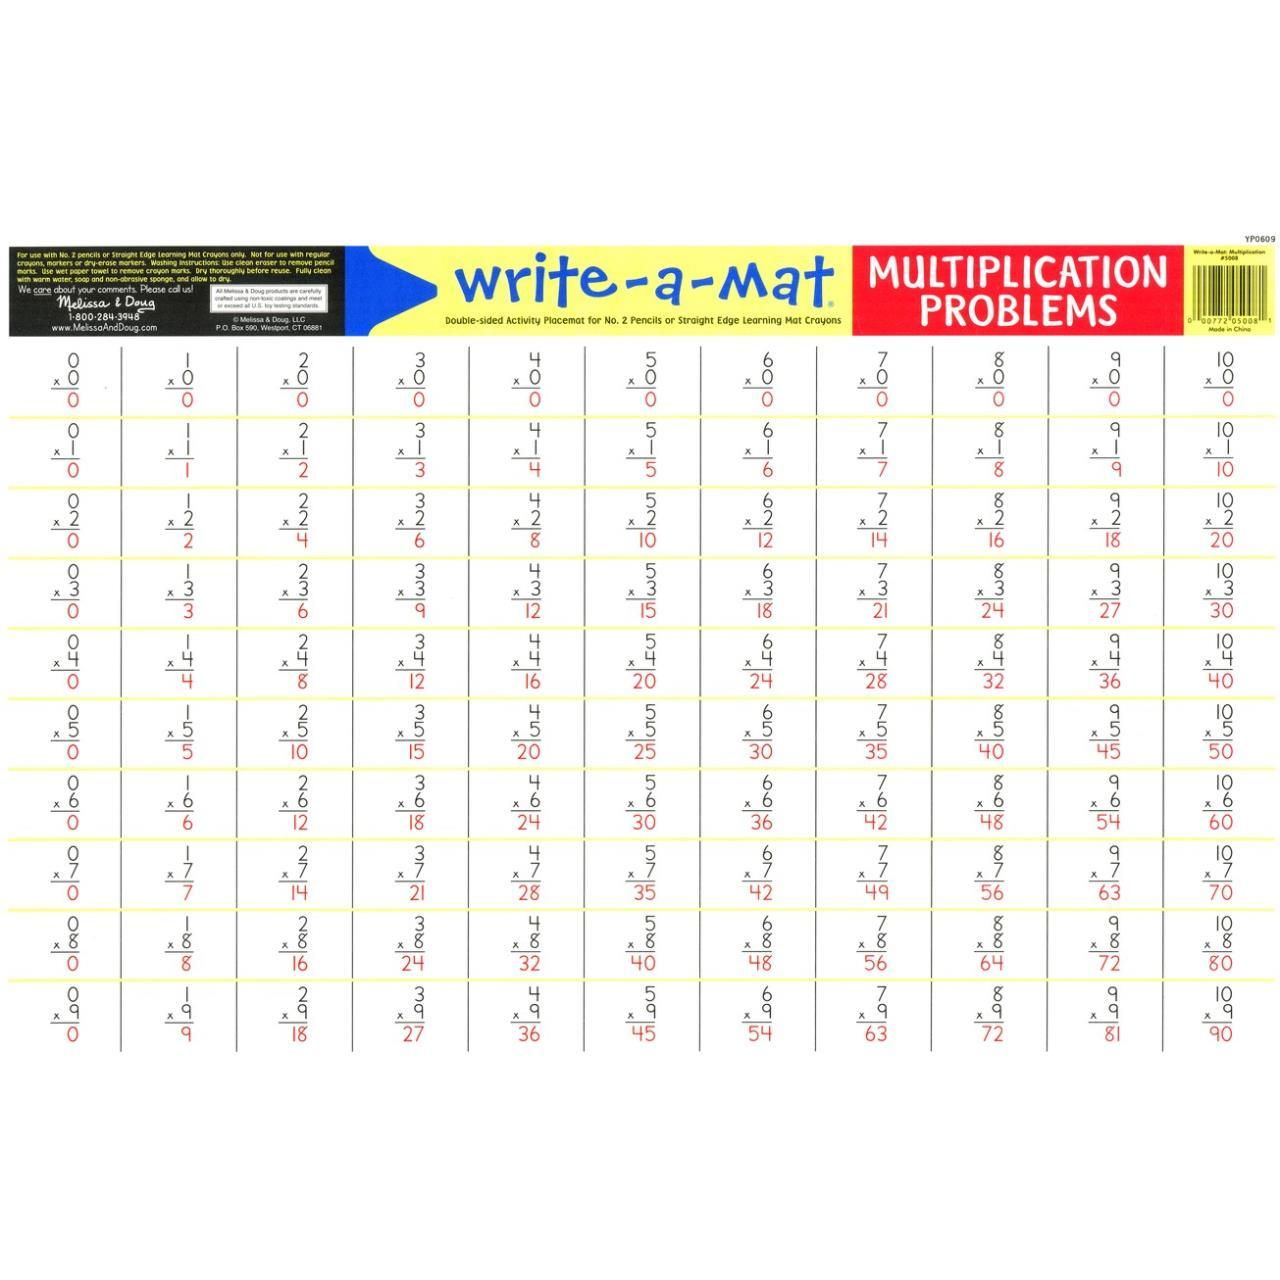 Write-A-Mat Multiplcation Problems